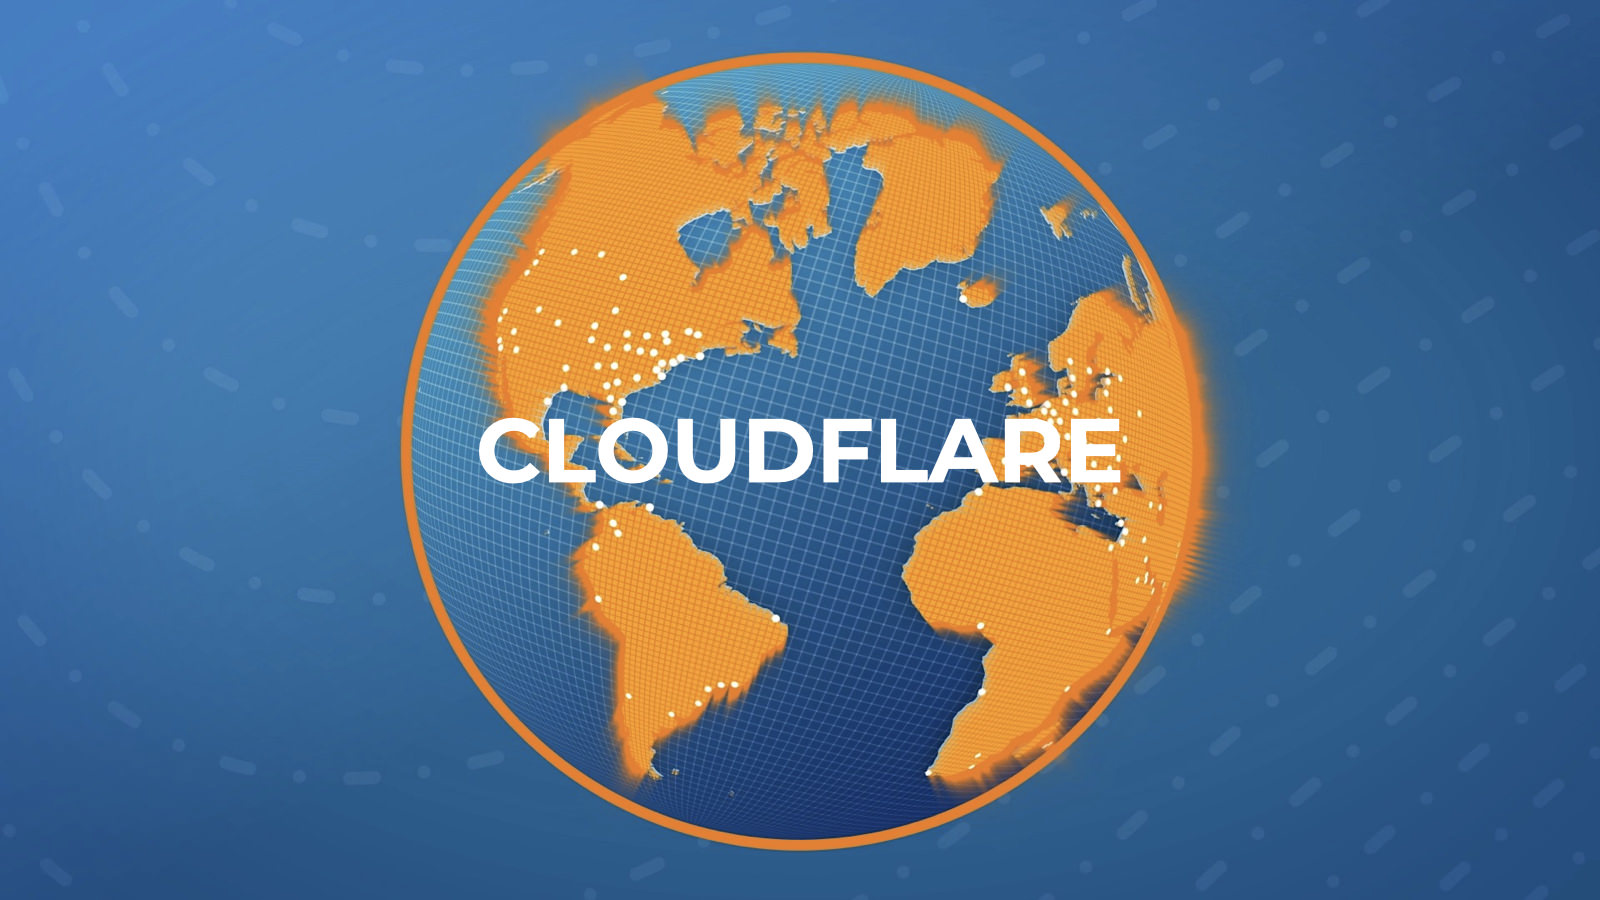 Homepage-Images.Cloudflare